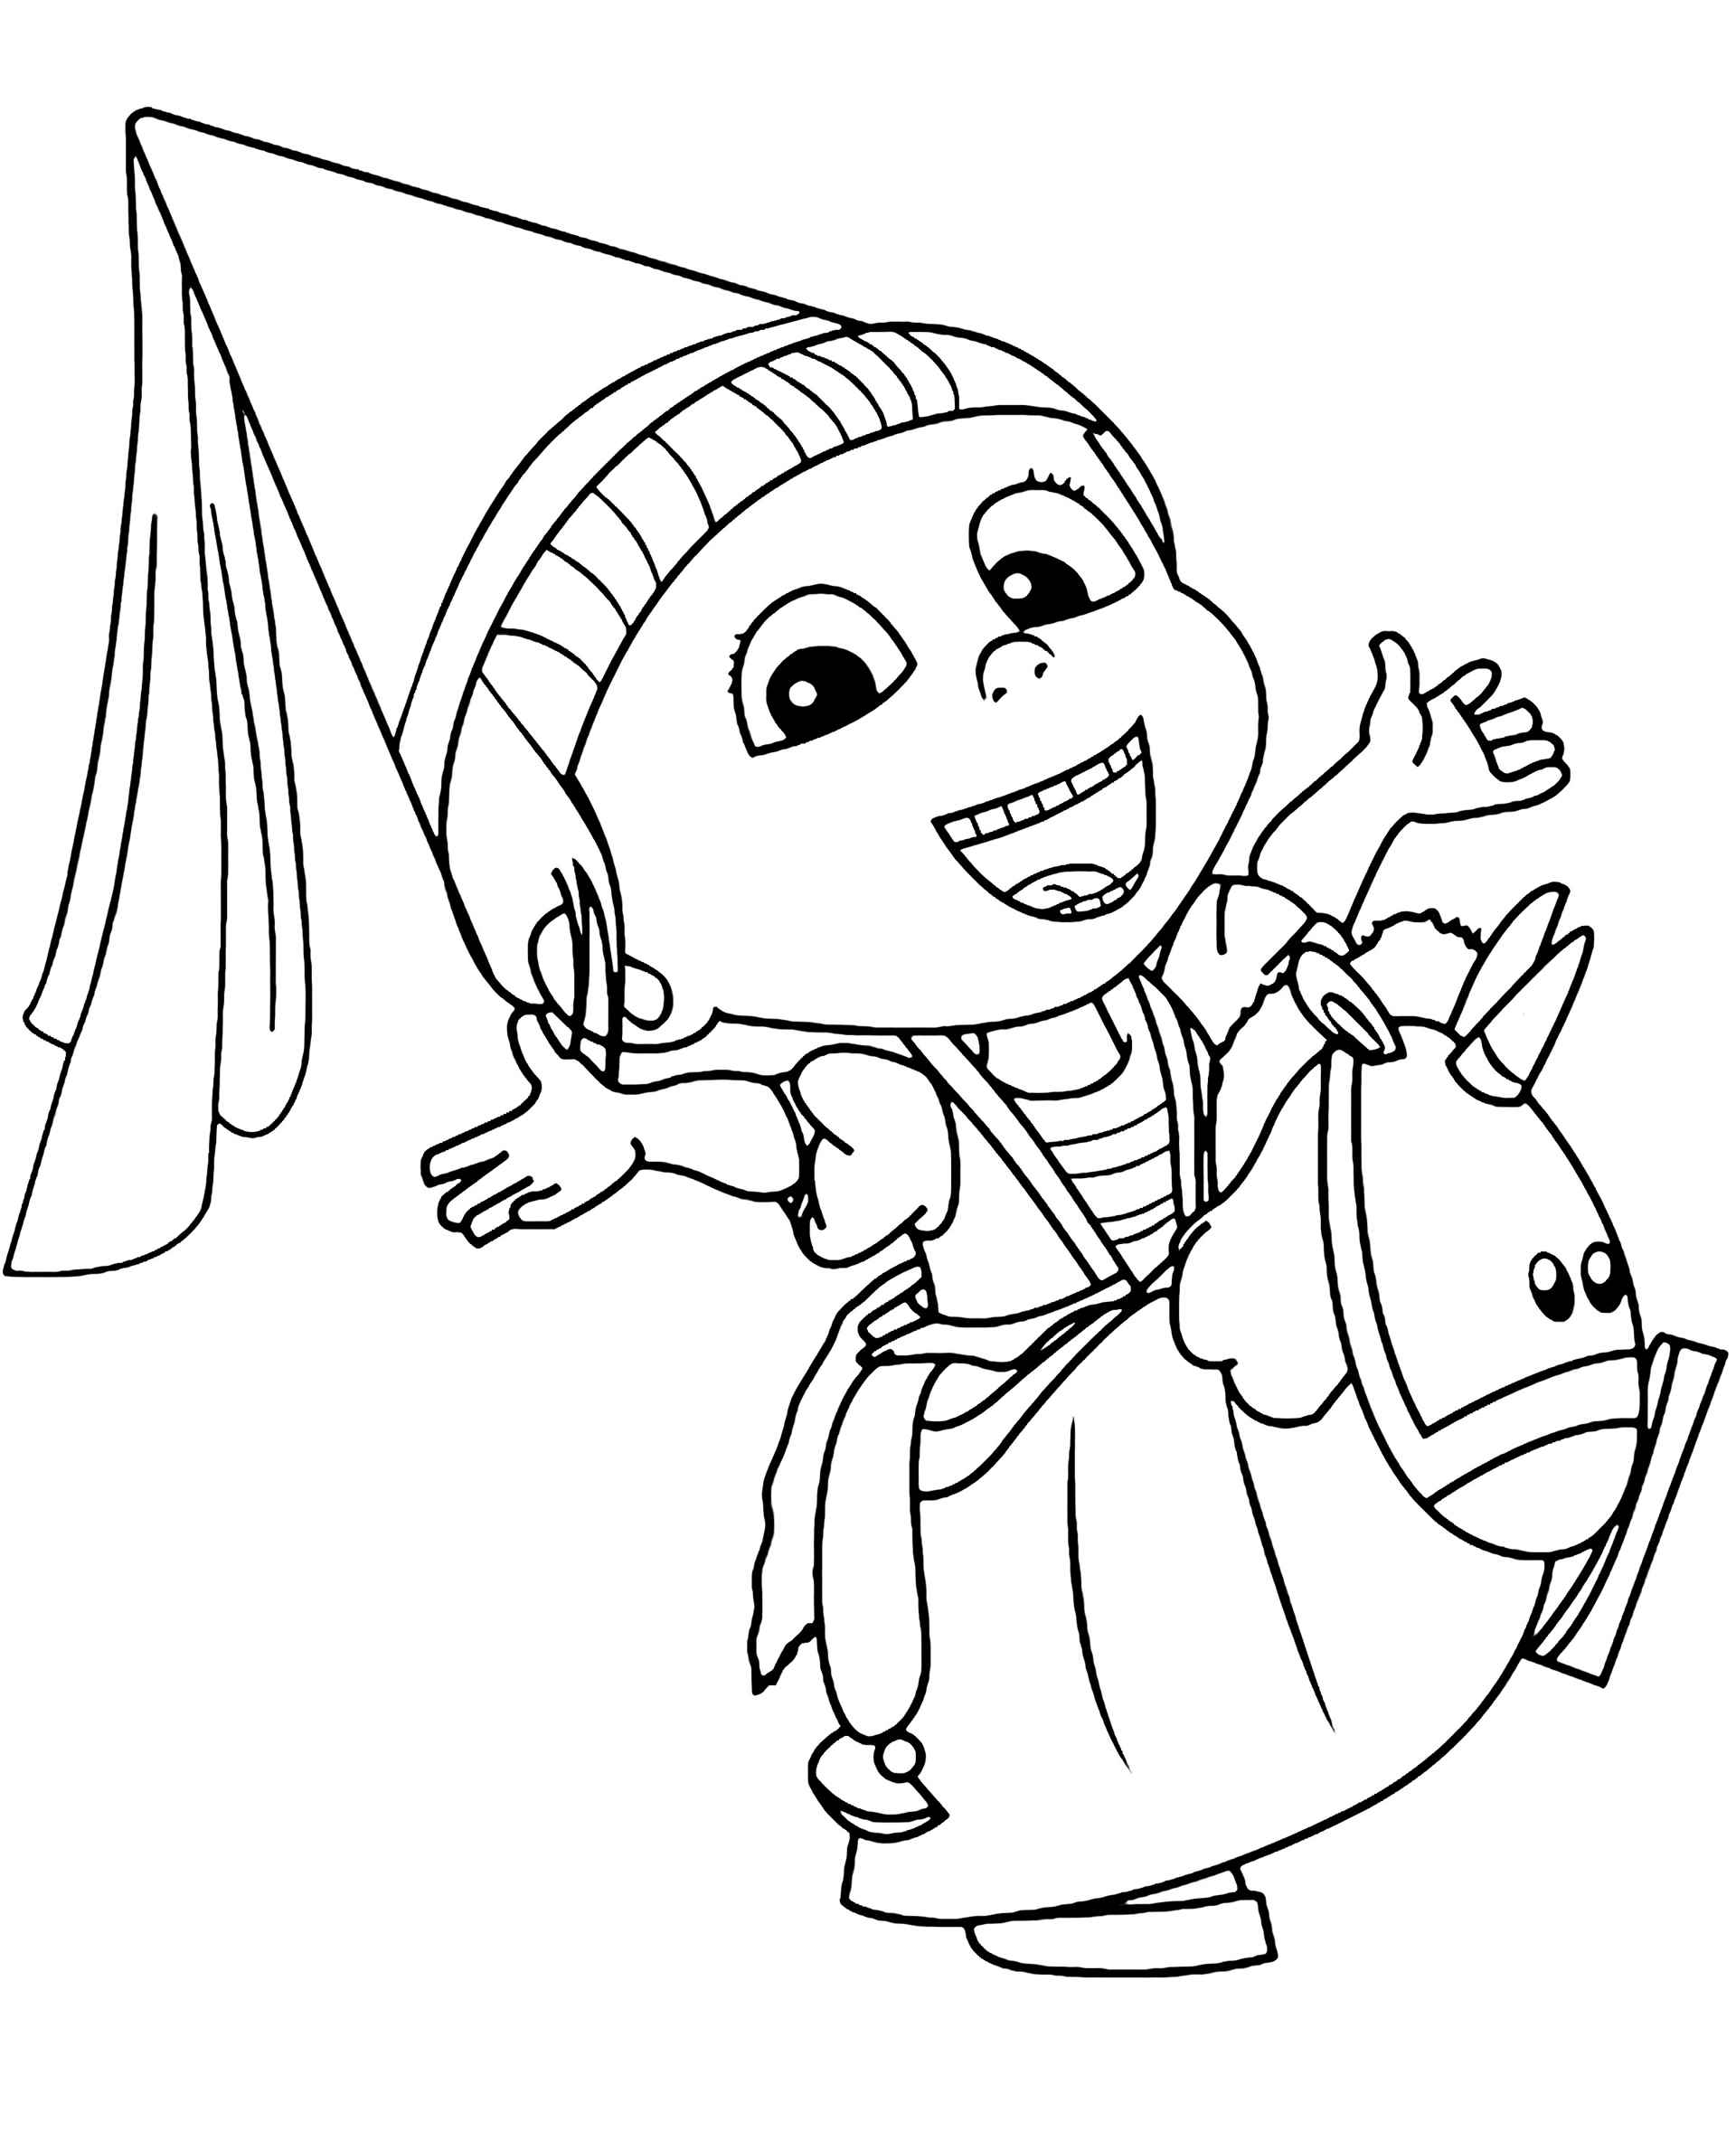 Princess Agnes From Minions Coloring Page